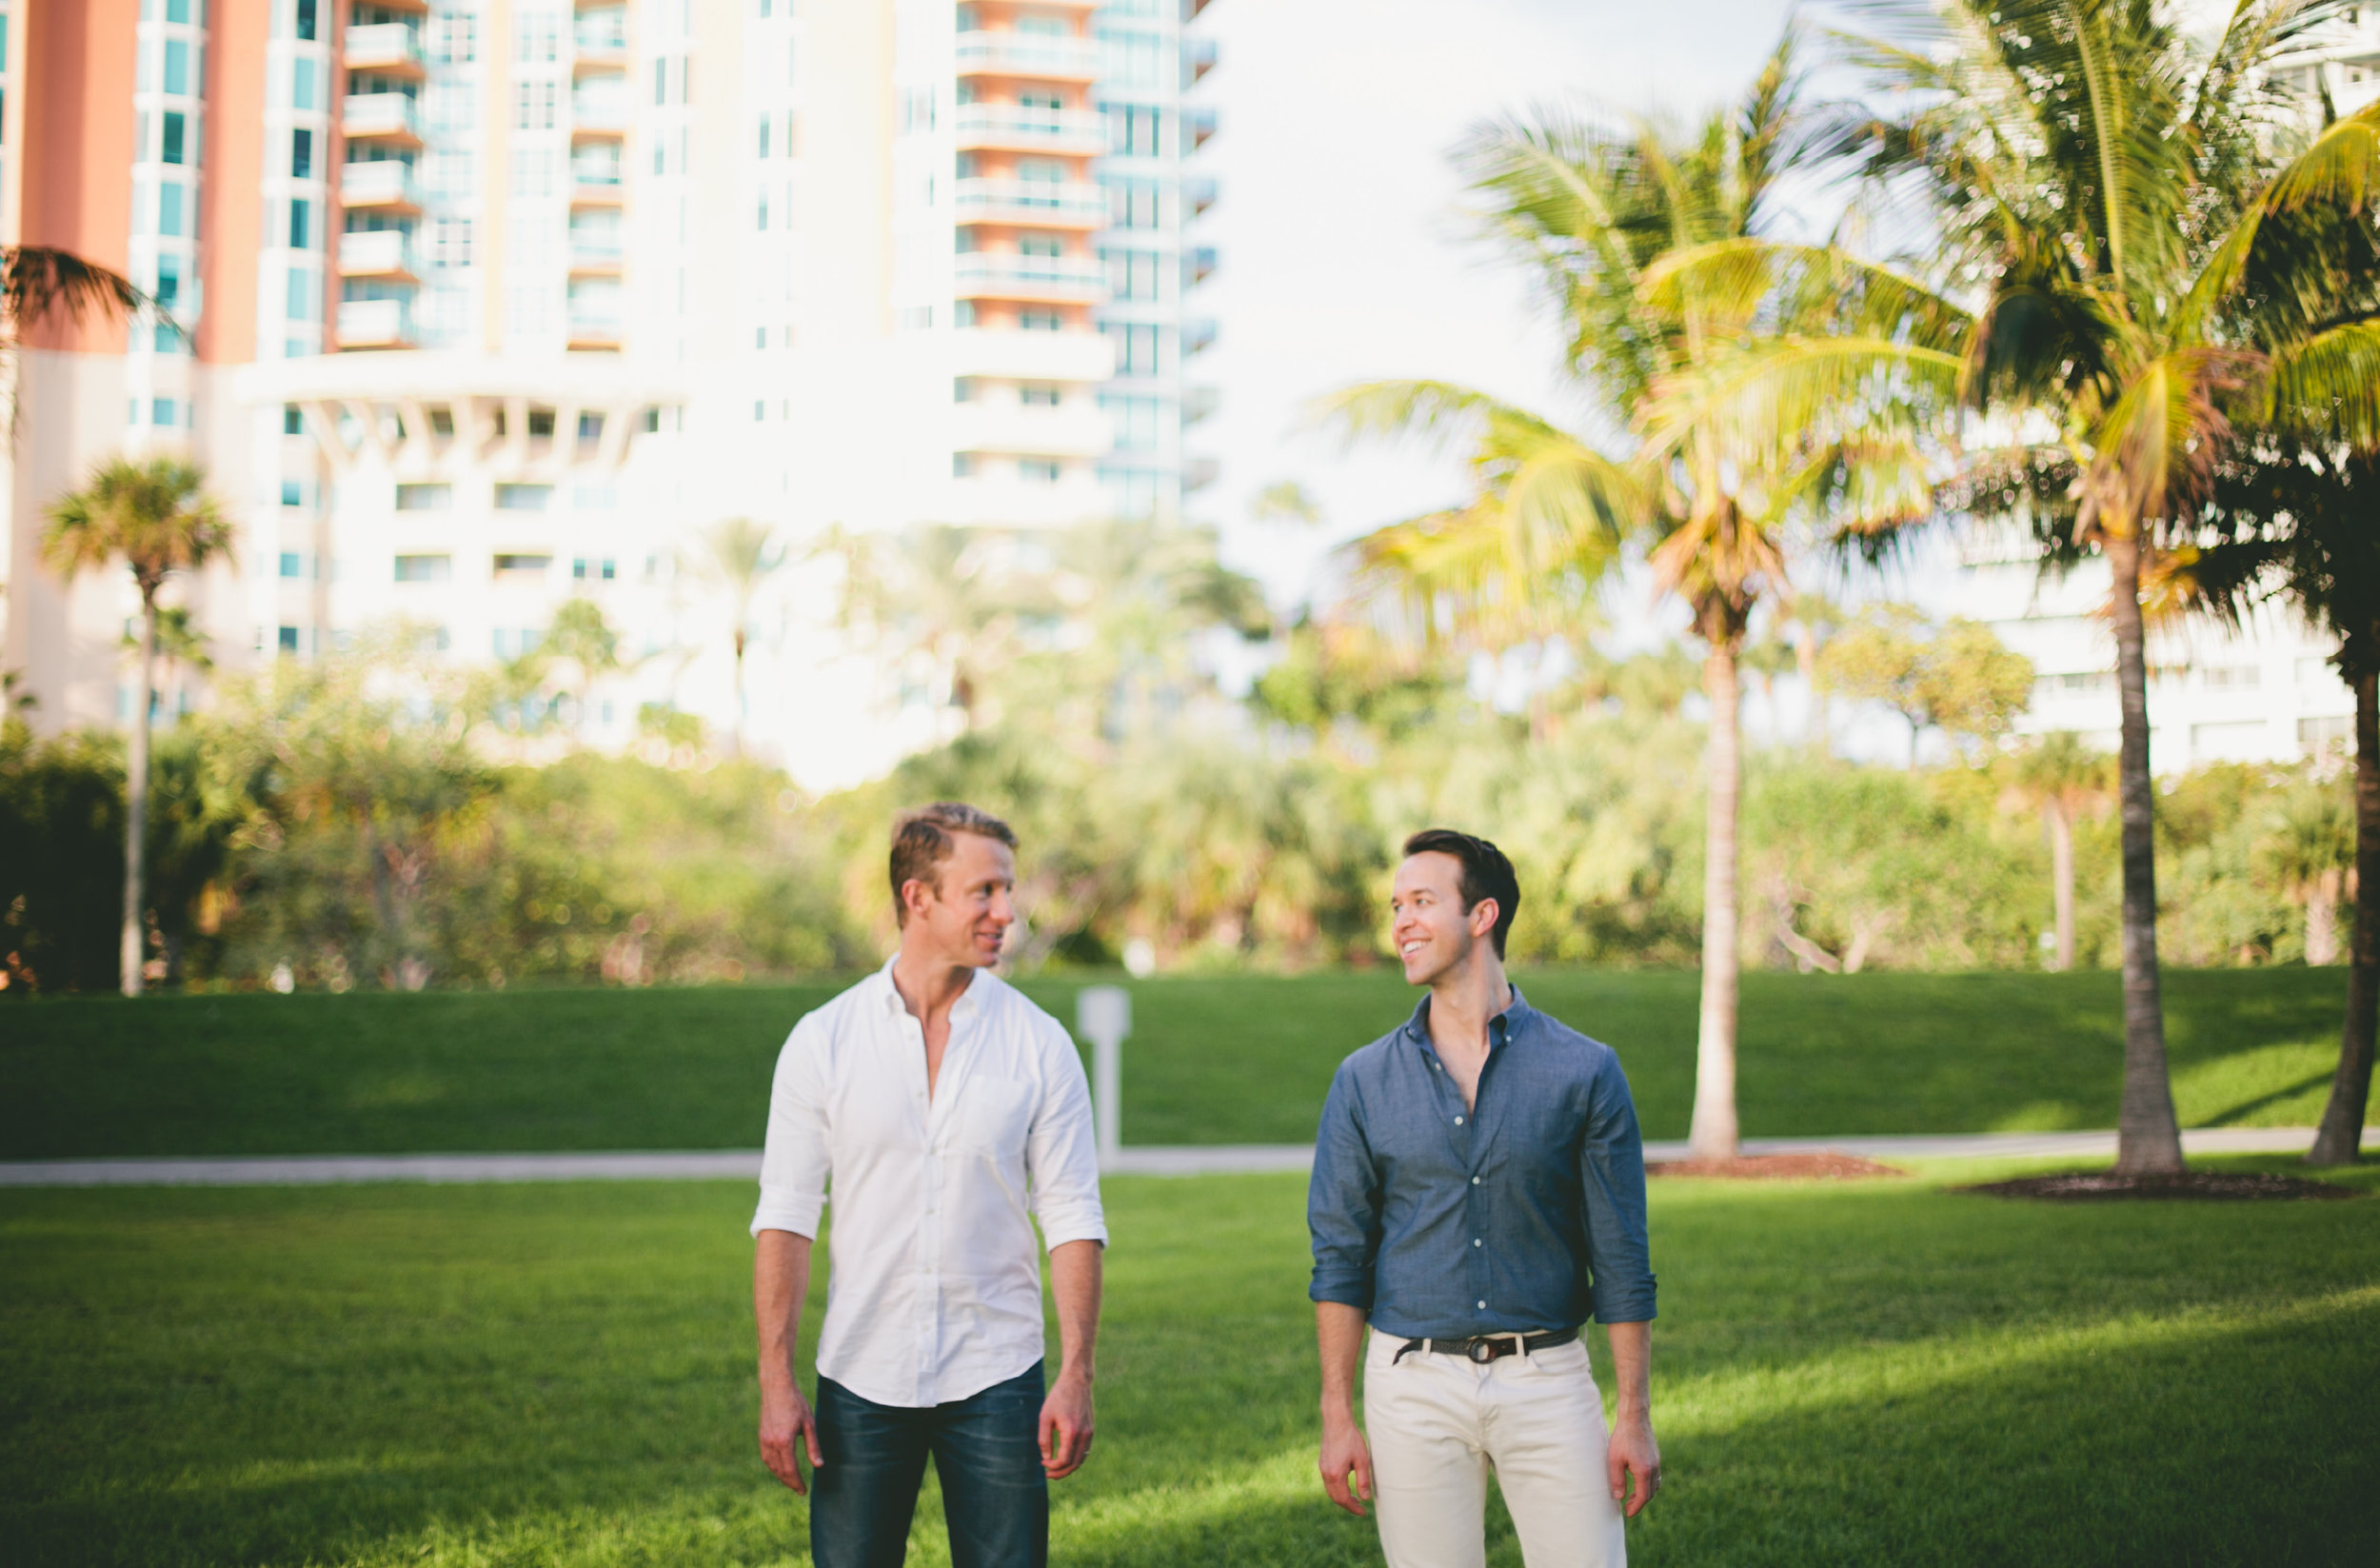 South Beach Miami Engagement photos at South Pointe Park 21.jpg